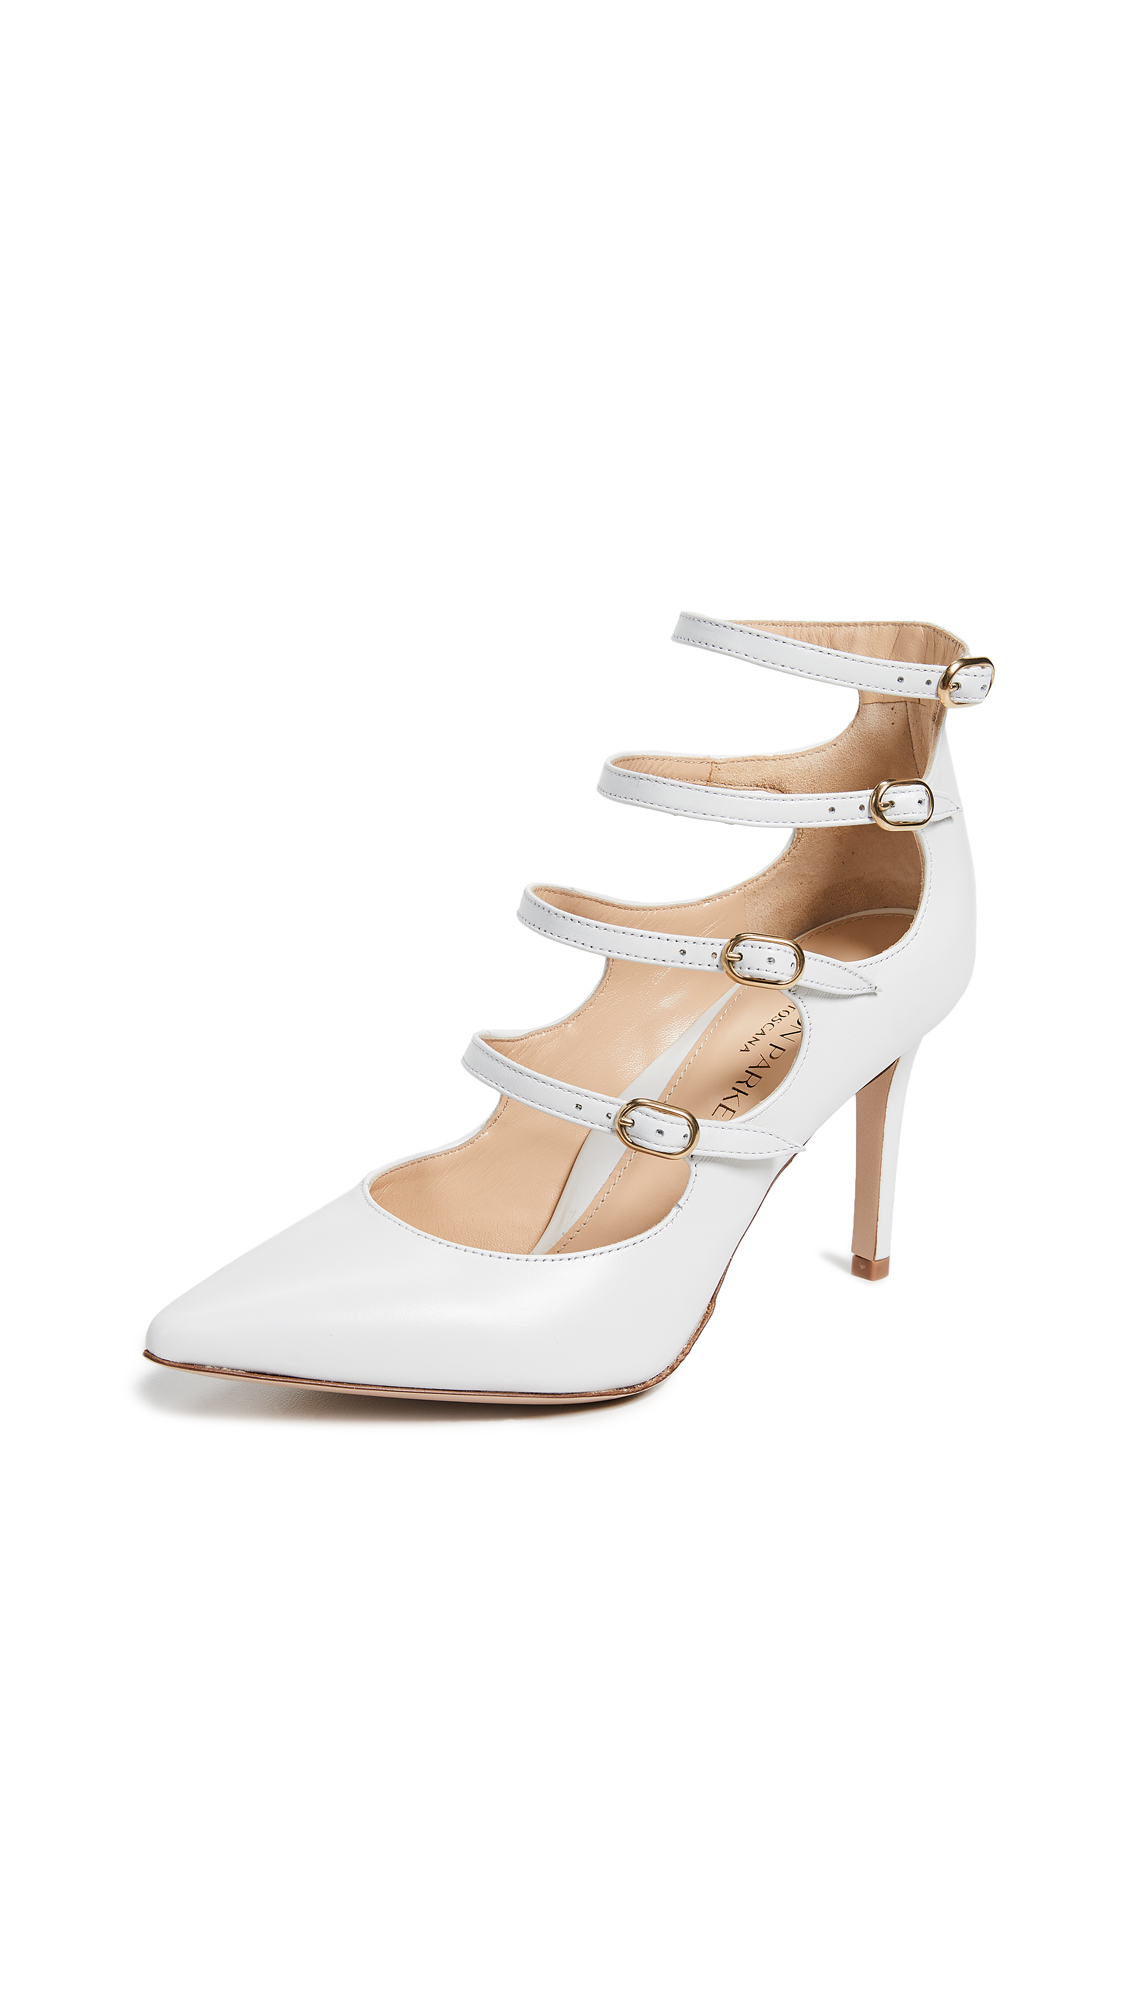 Marion Parke Mitchell Pumps - White